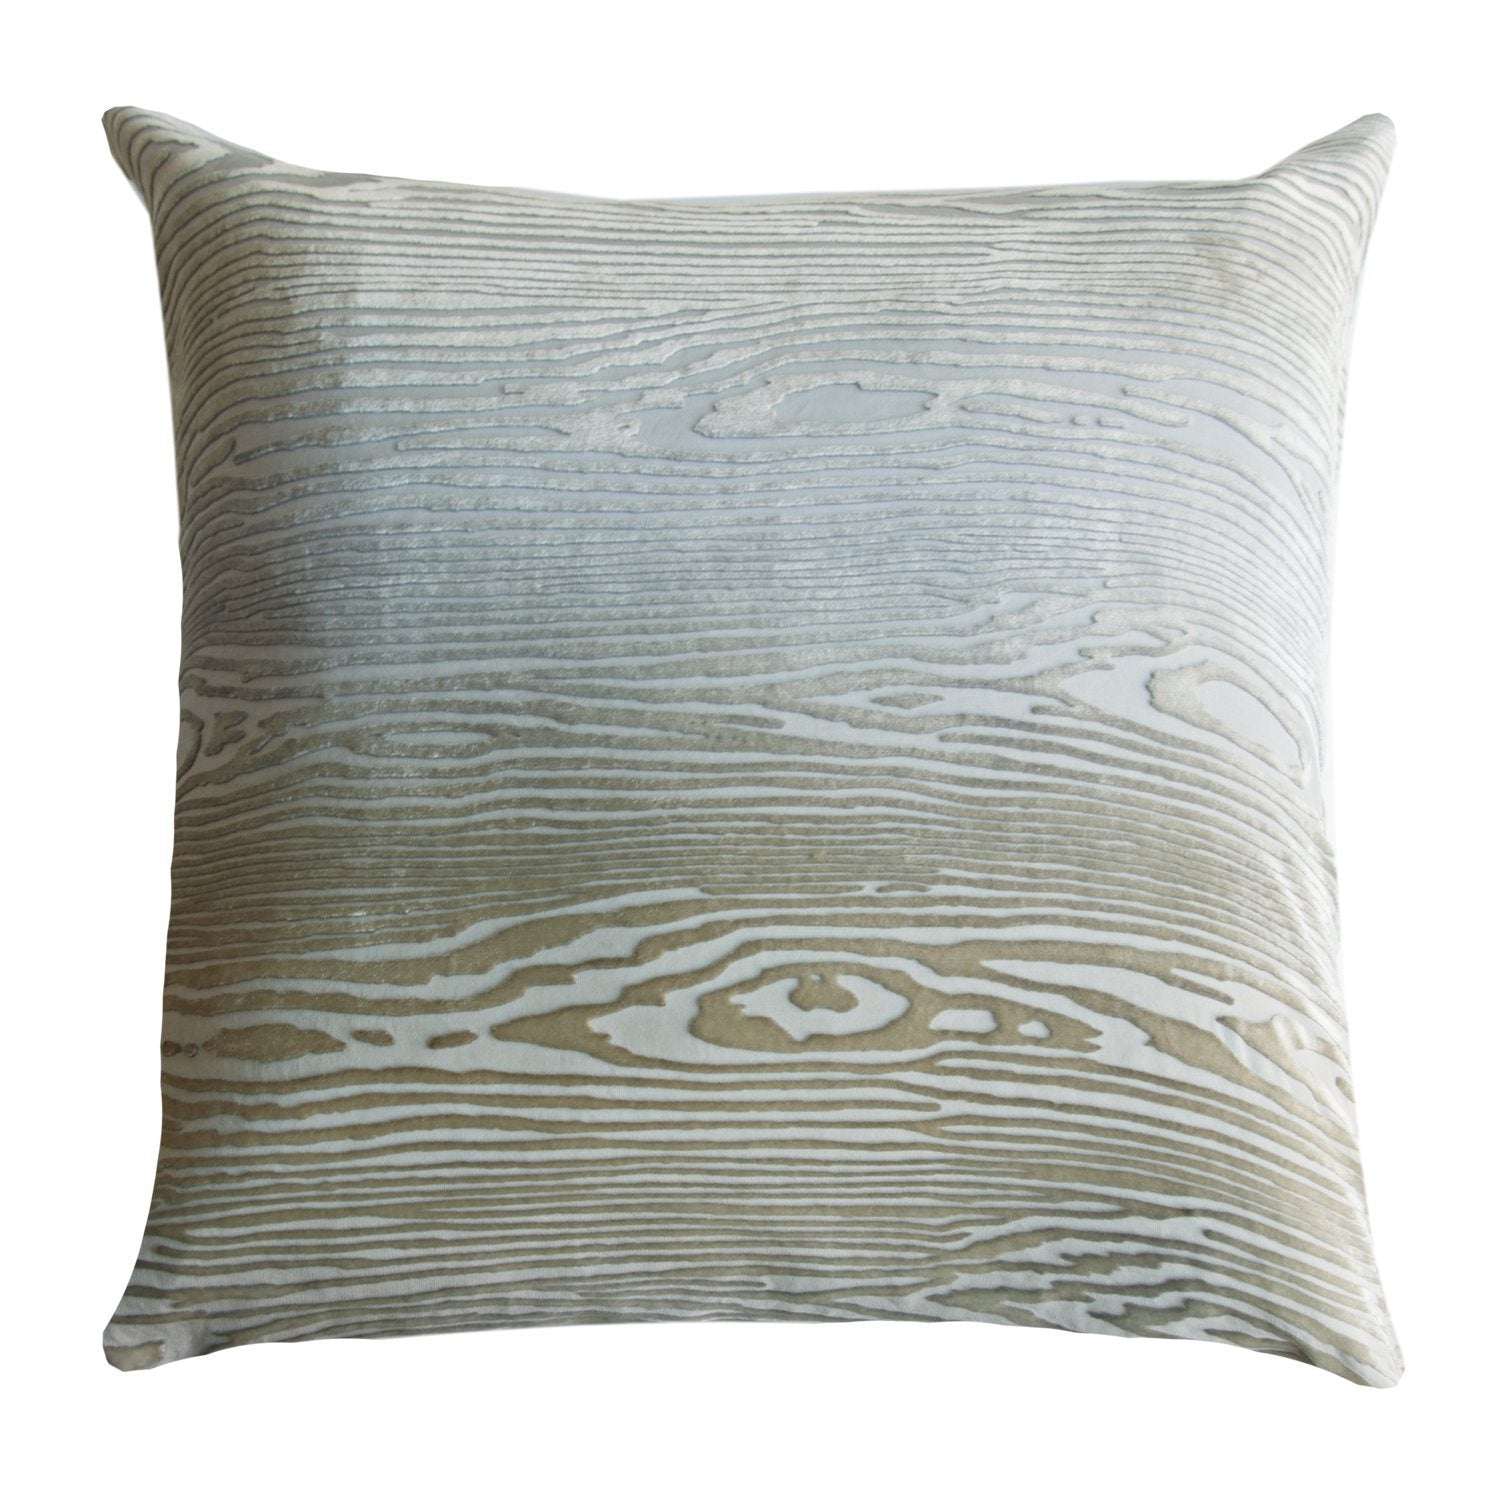 Woodgrain Velvet Nickel Pillows by Kevin O'Brien Studio - Fig Linens